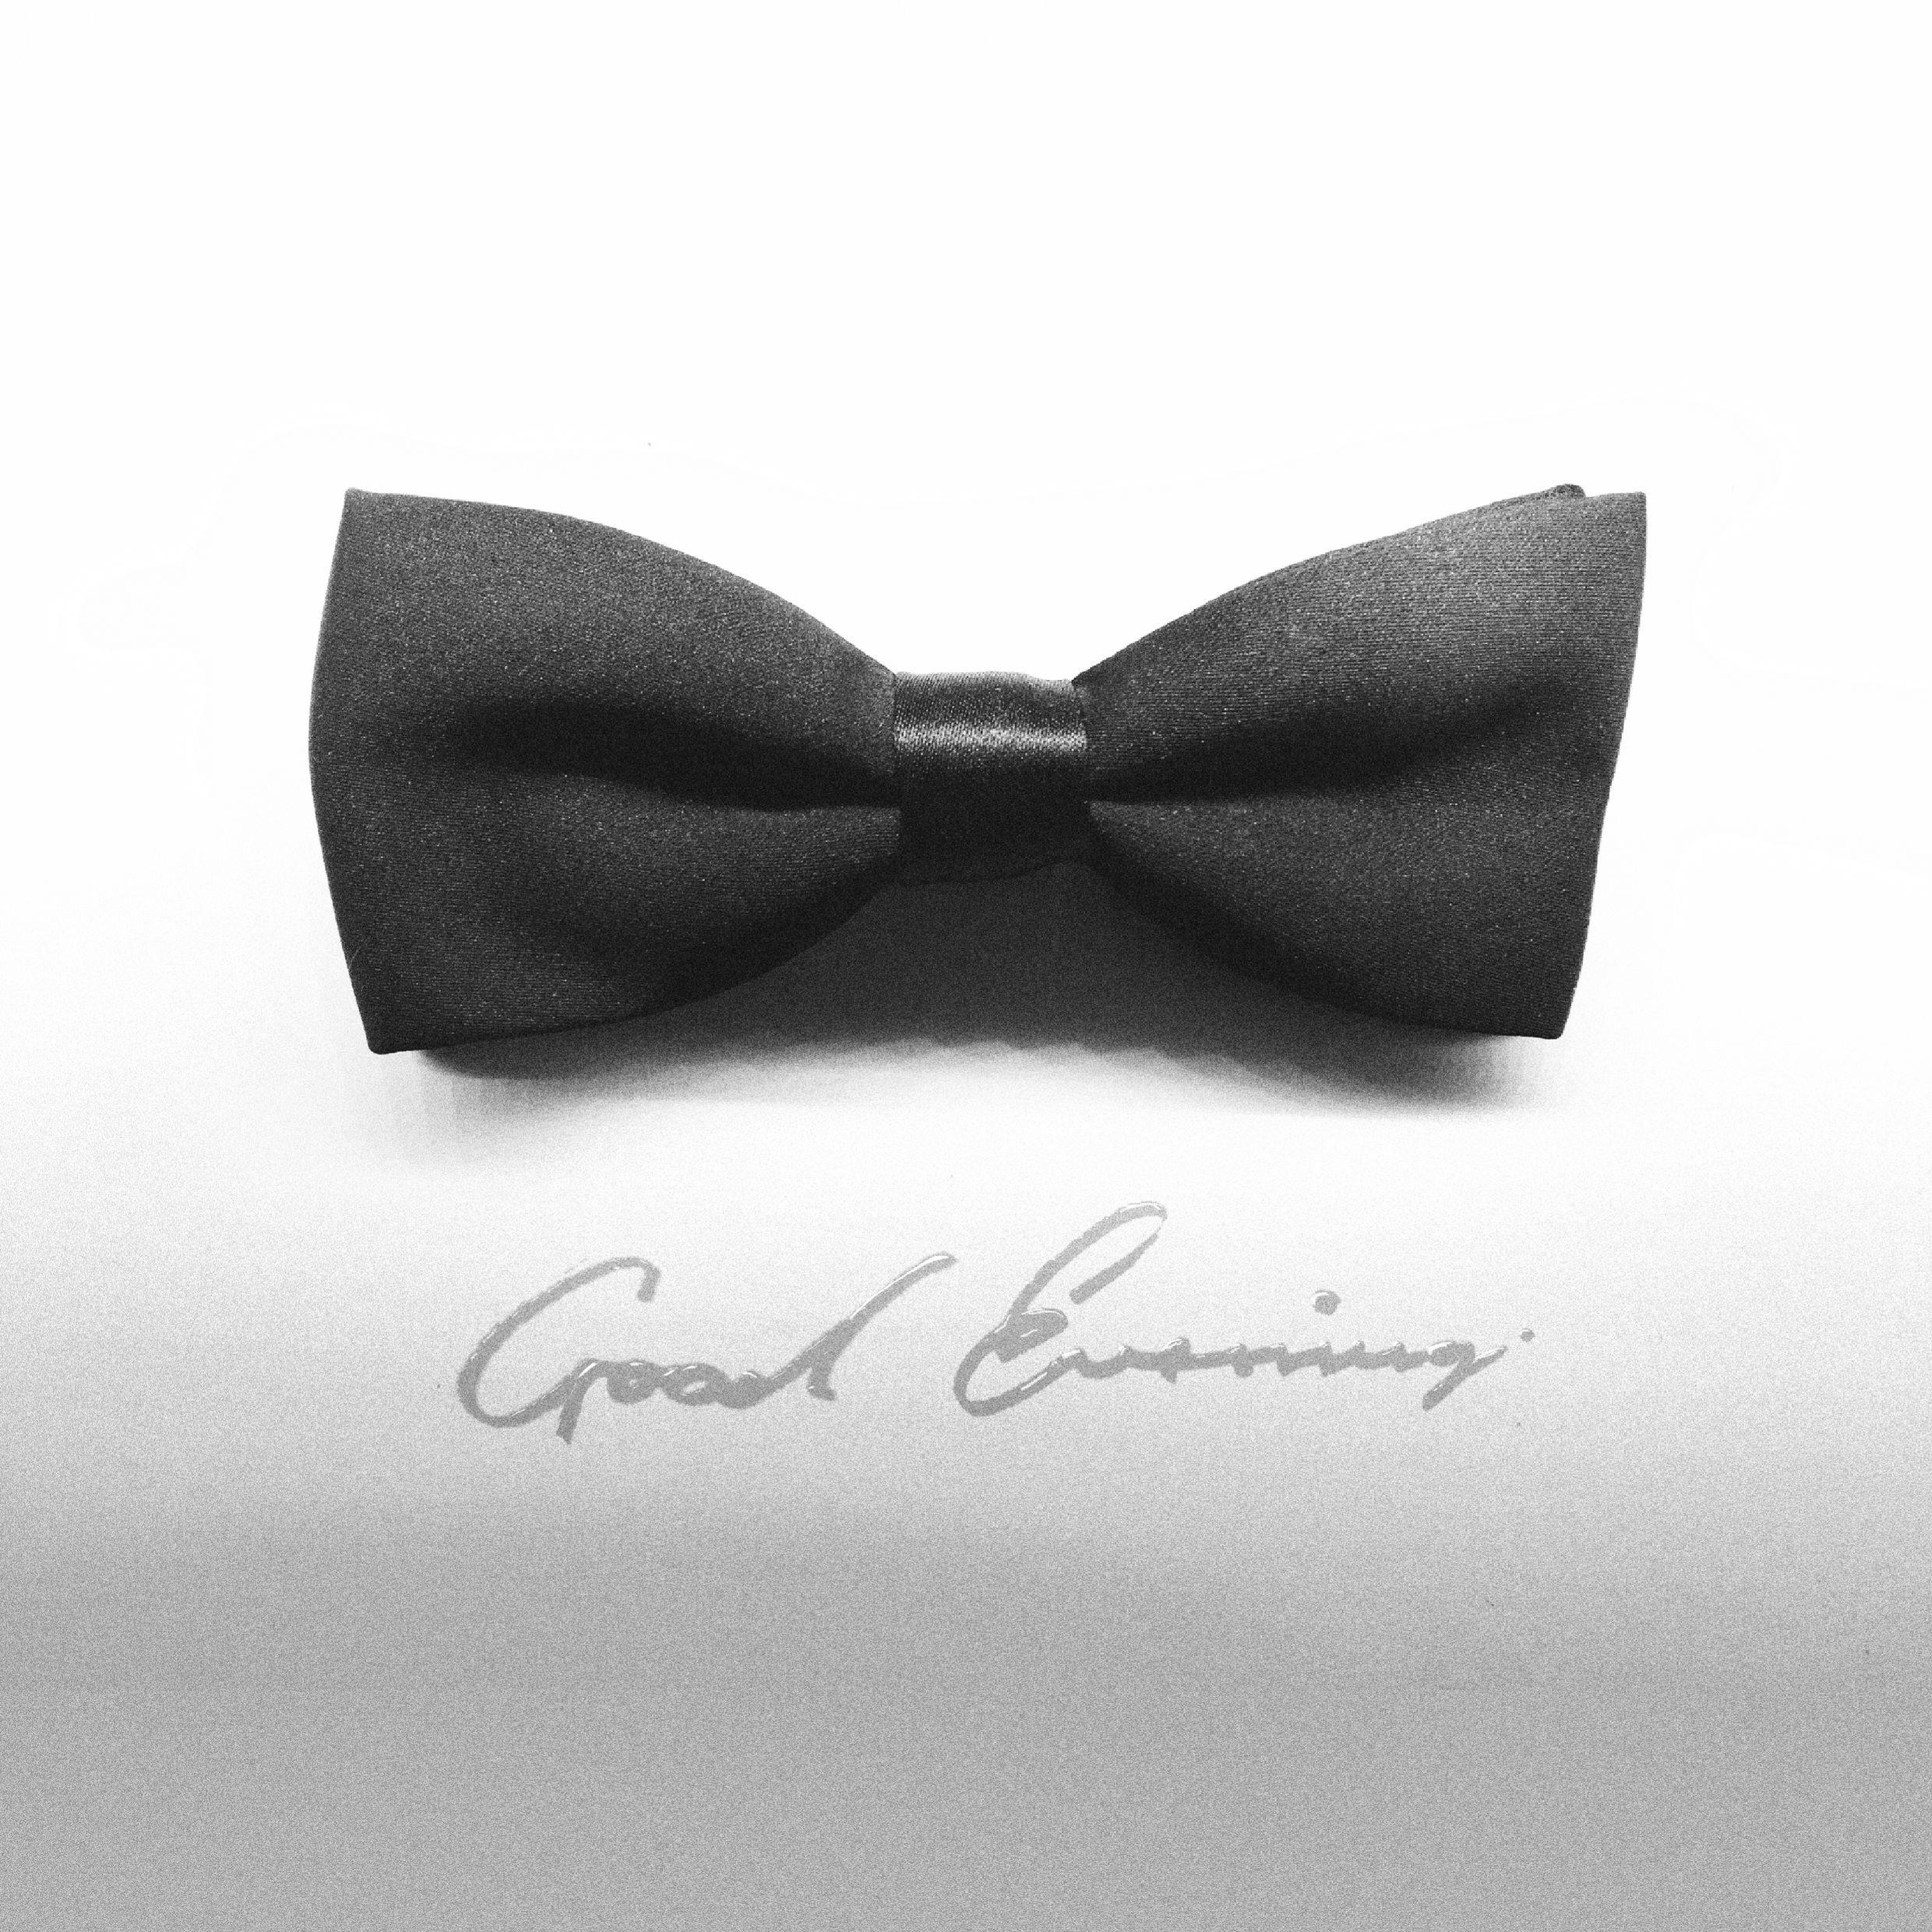 Deorro Good Evening Cover Album